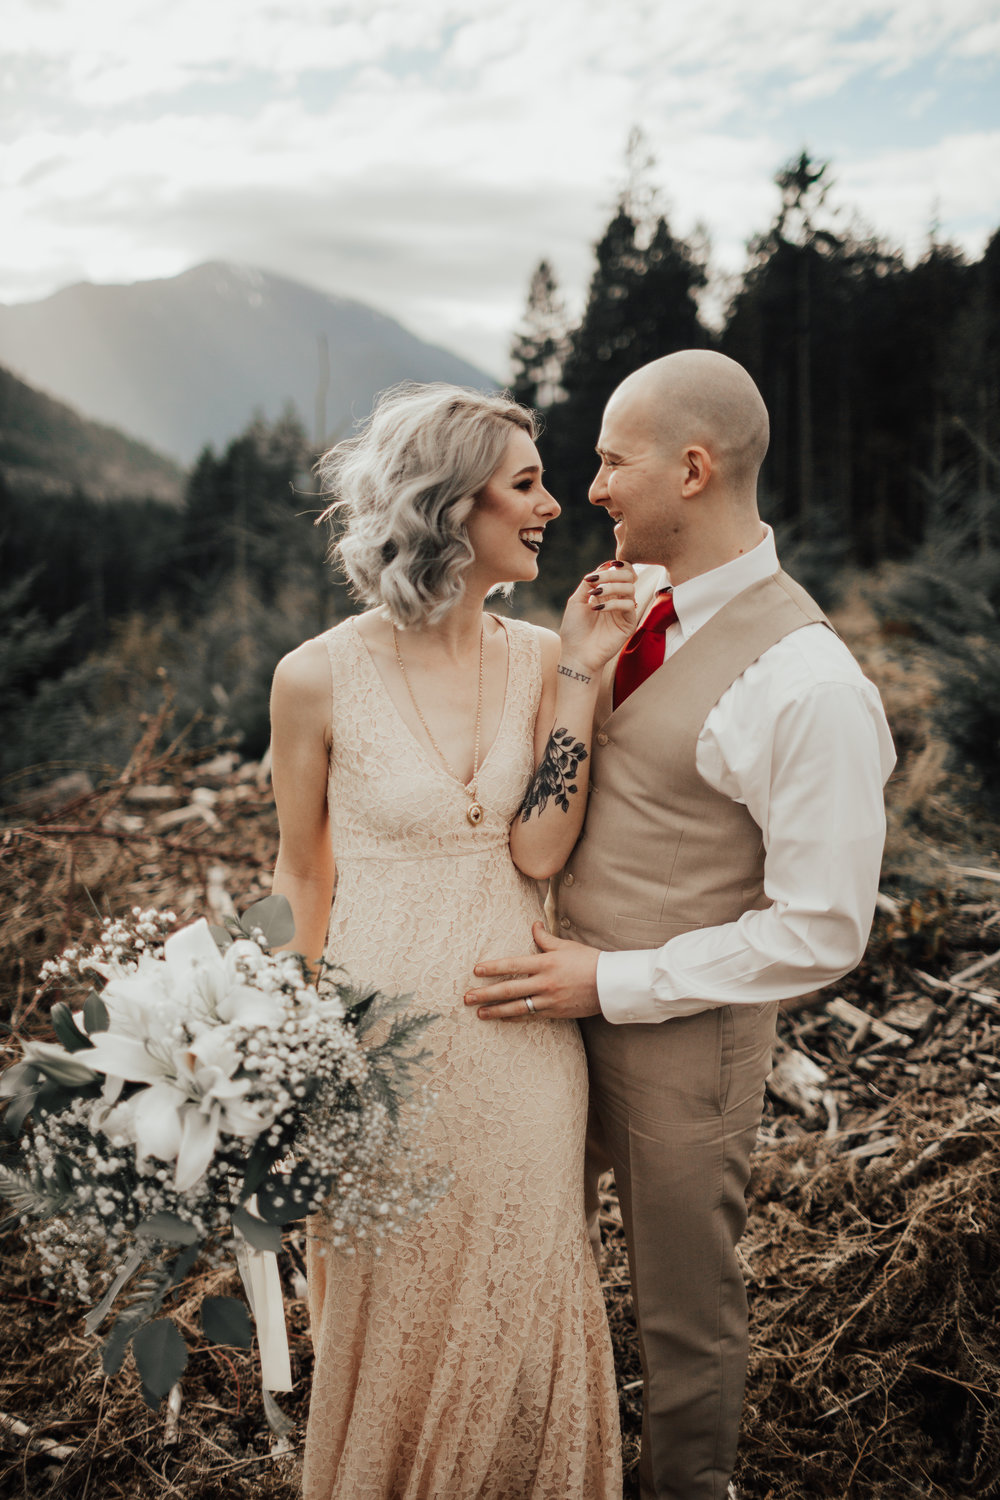 Port Angeles-PNW-Sequim-Portrait-wedding-elopement-photographer-kayladawnphoto-kayla dawn photography-olympic peninsula-portraiture3.jpg